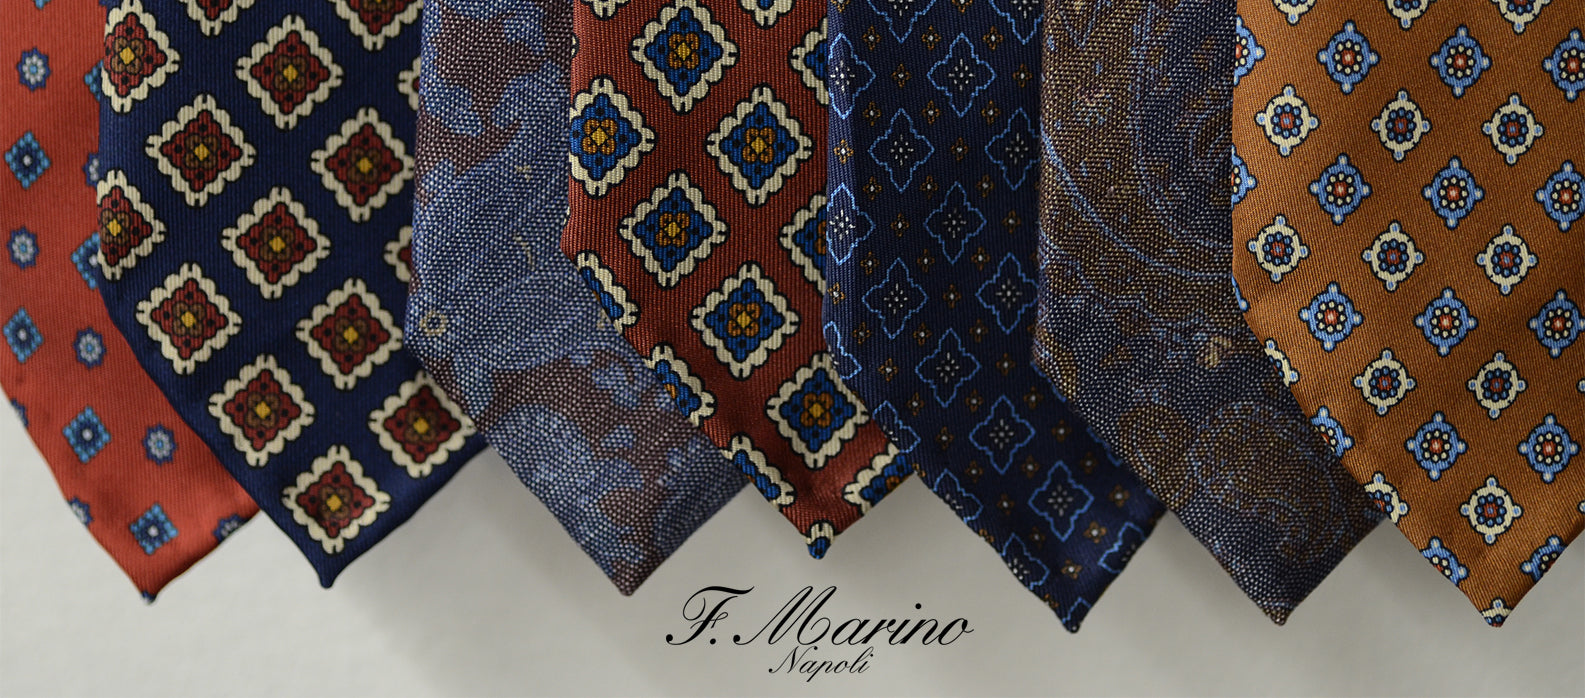 Hand made bespoke ties by F.Marino Napoli. Hand printed pure Italian silk, entirely hand made in Naples. Available at Sartoria Sciarra Sydney, Australia.